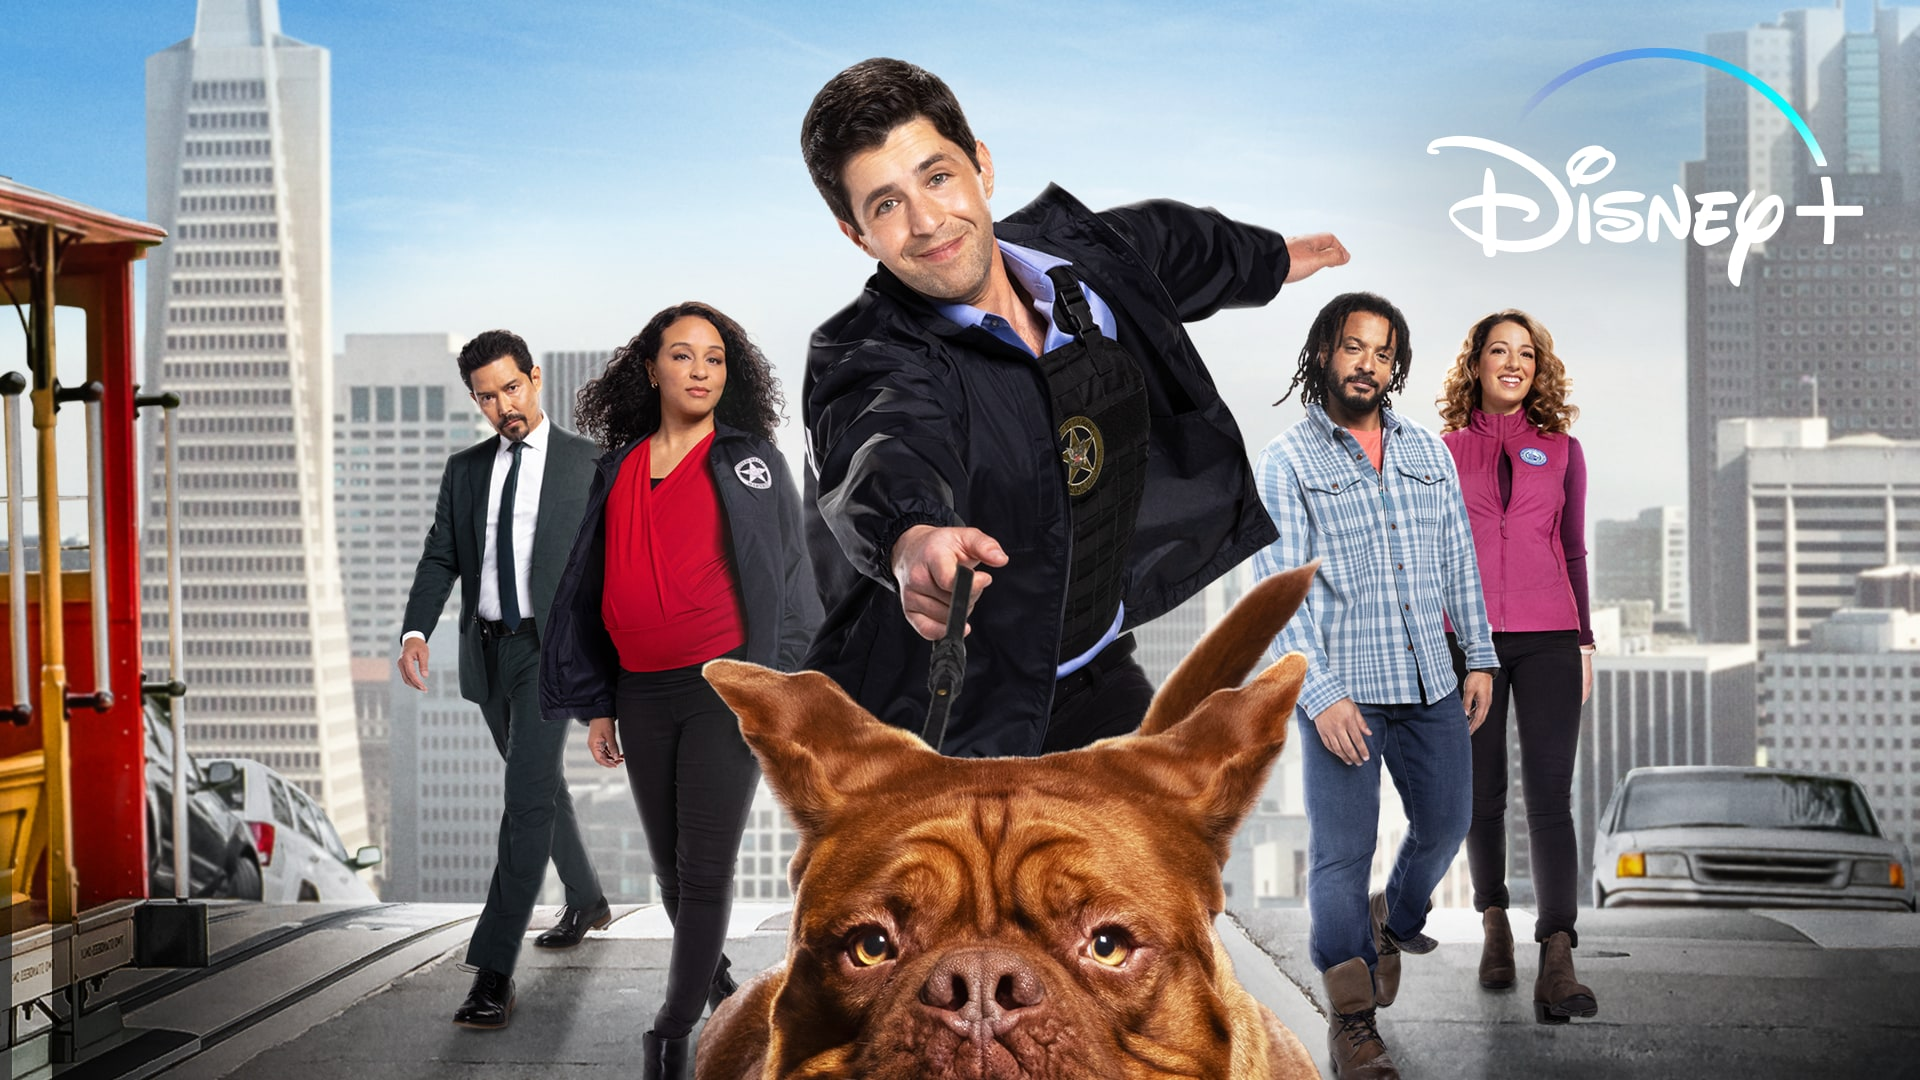 Turner & Hooch Green Carpet and Premiere | What's Up, Disney+